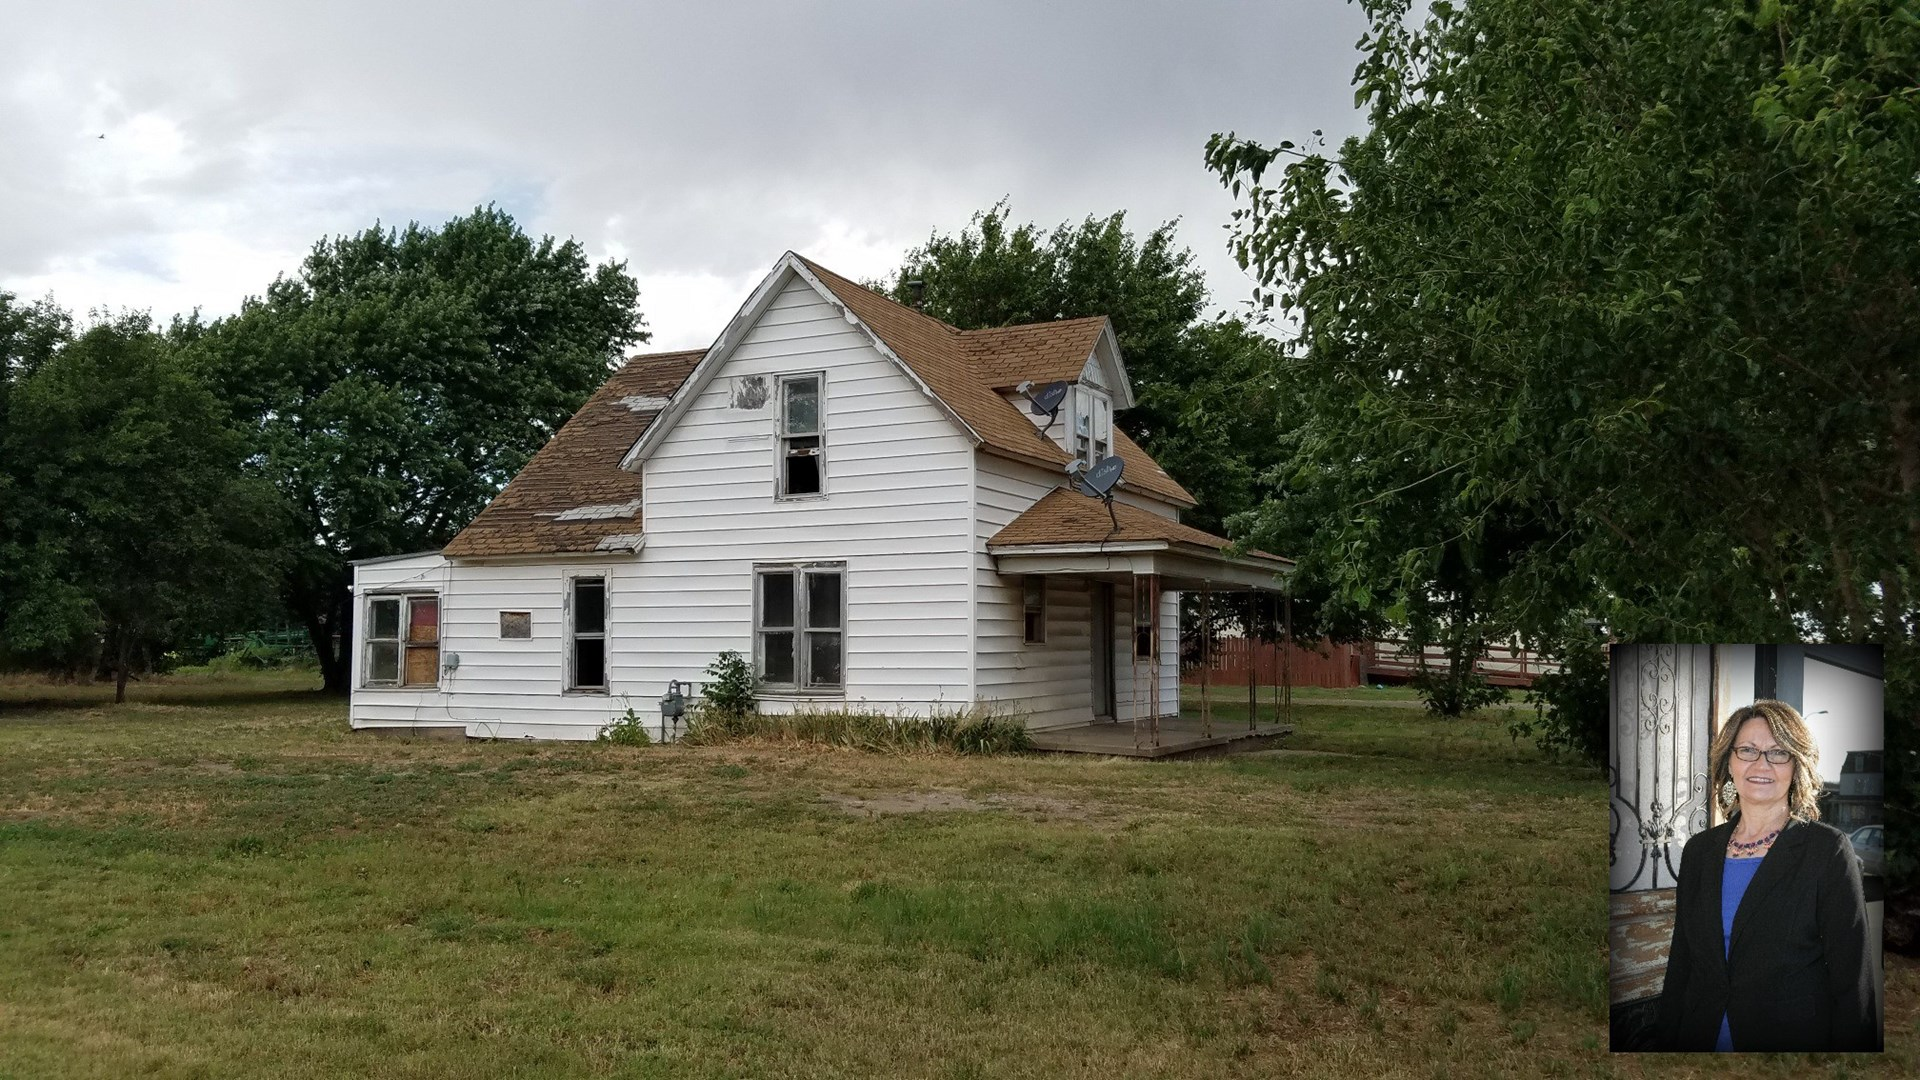 4 Bedroom Fixer Upper In Carmen, OK - Open School District